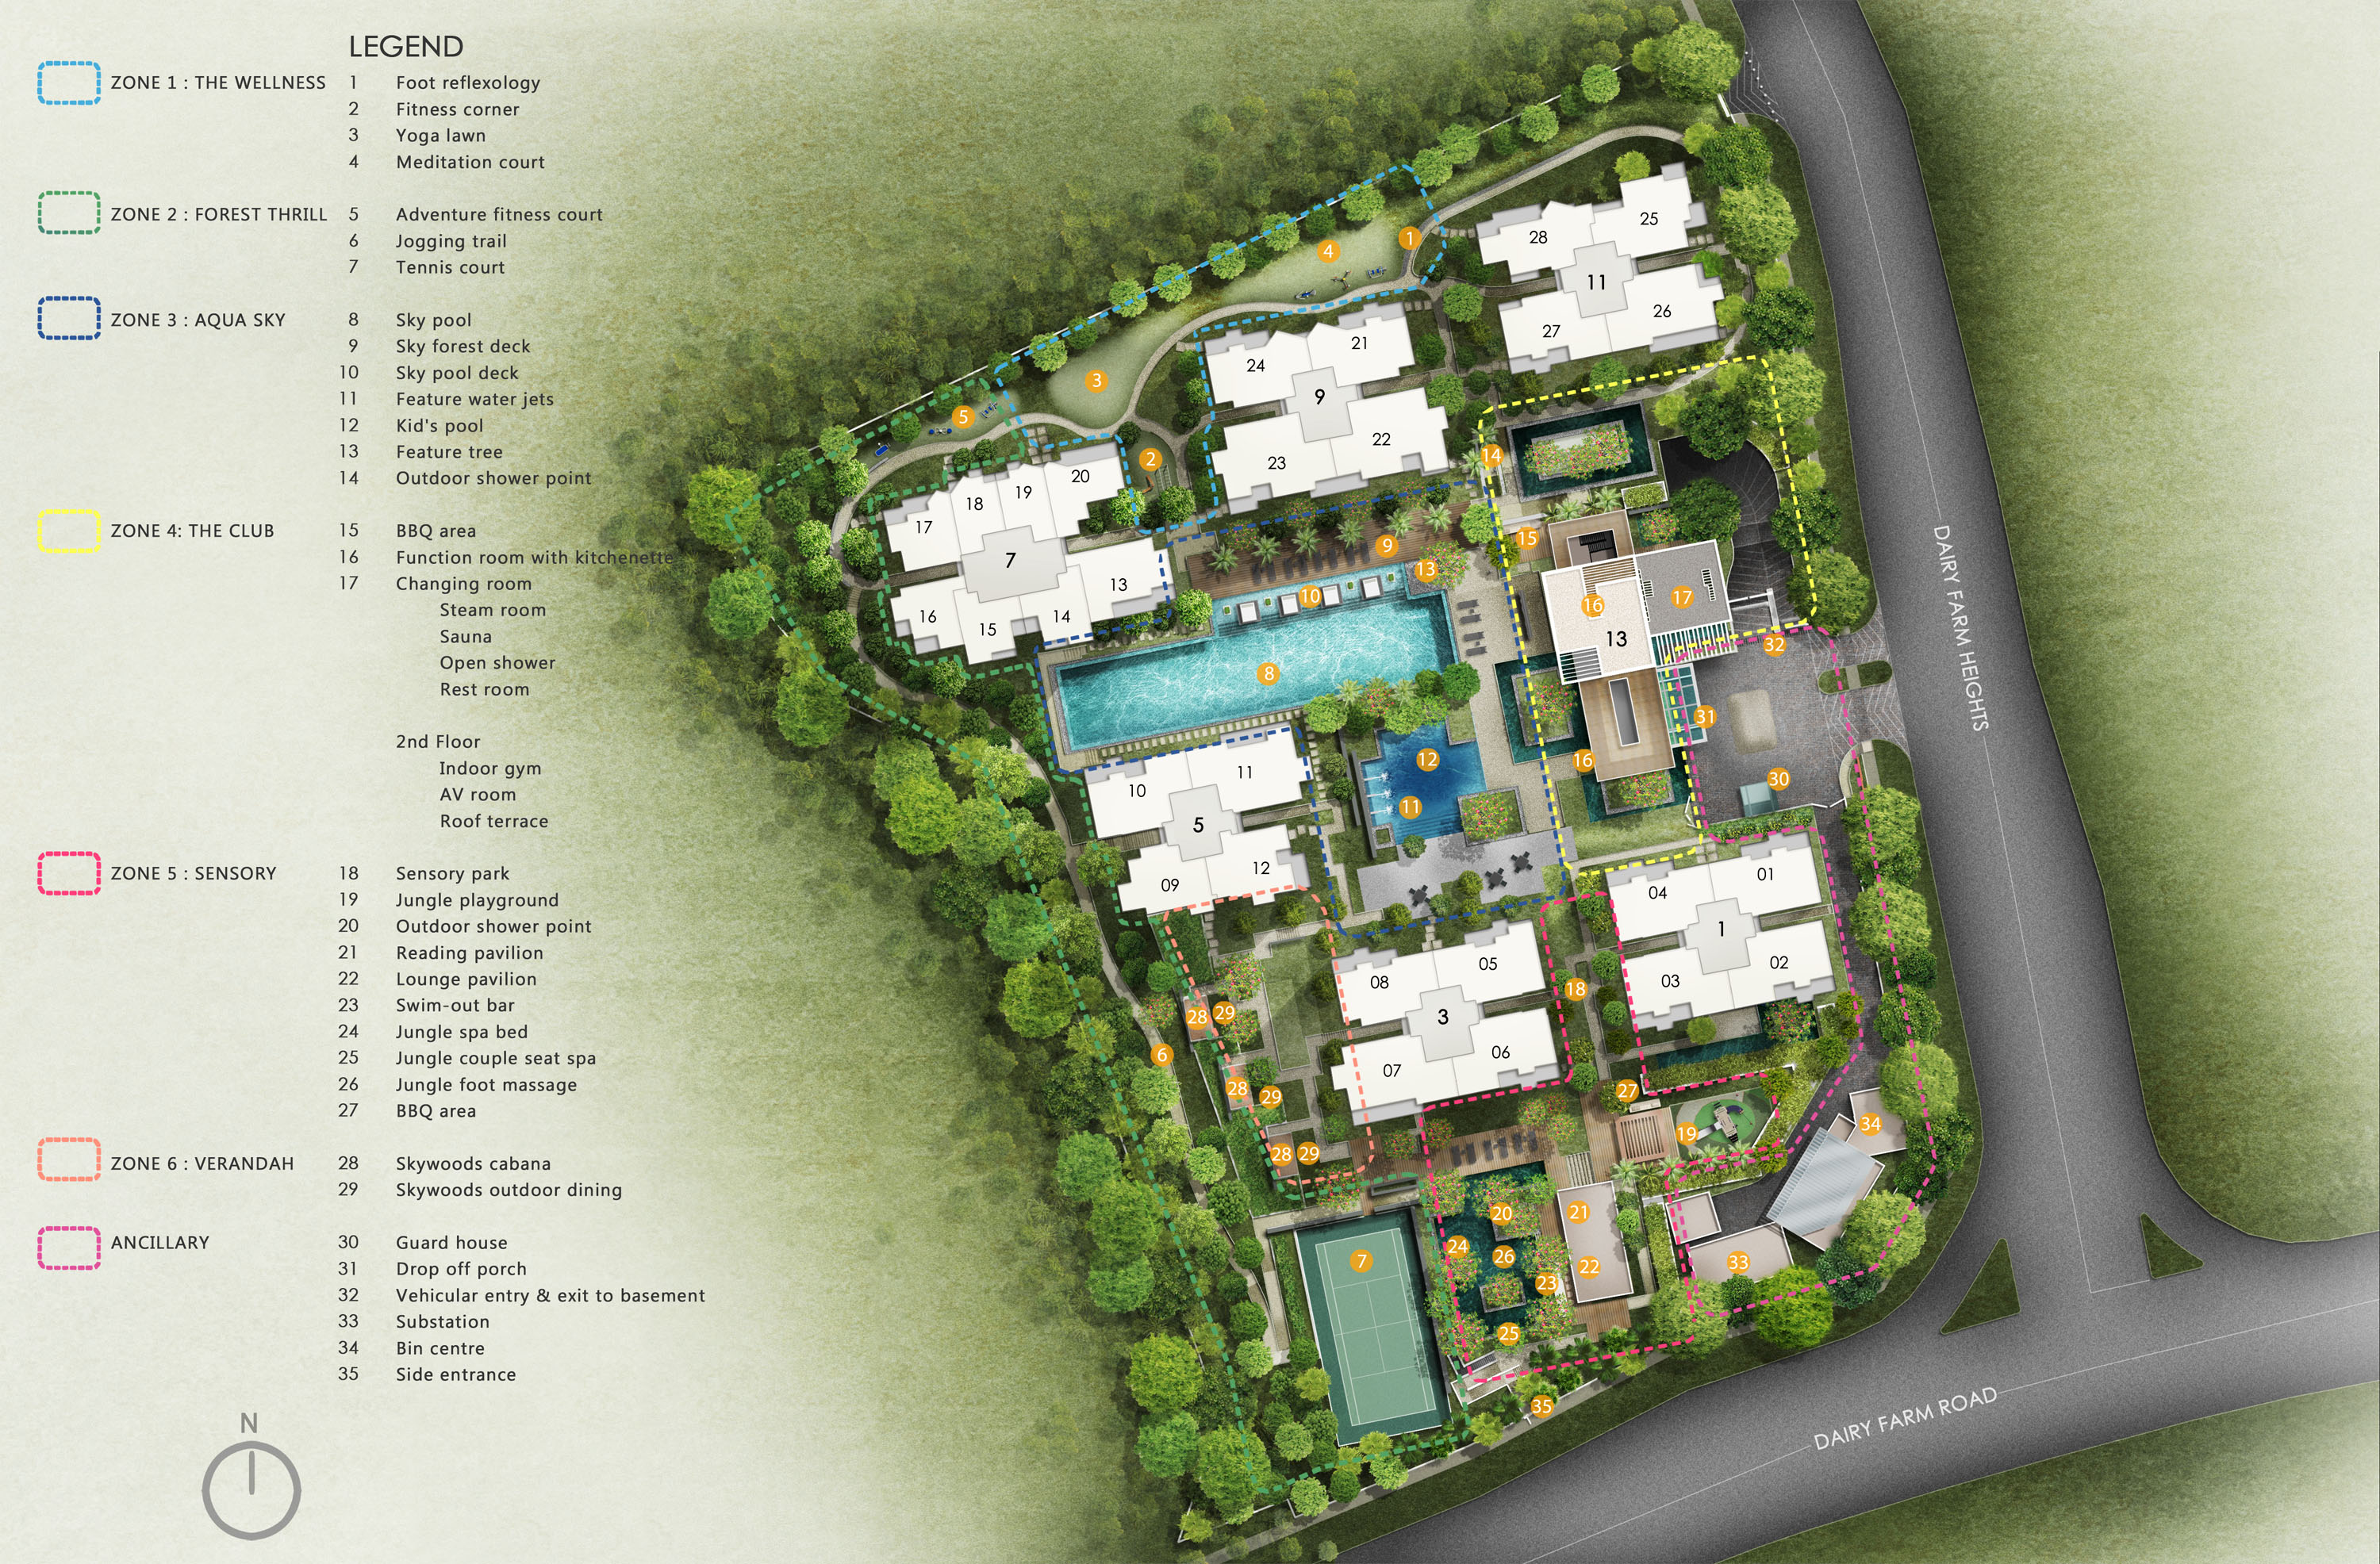 The Skywoods Site Map